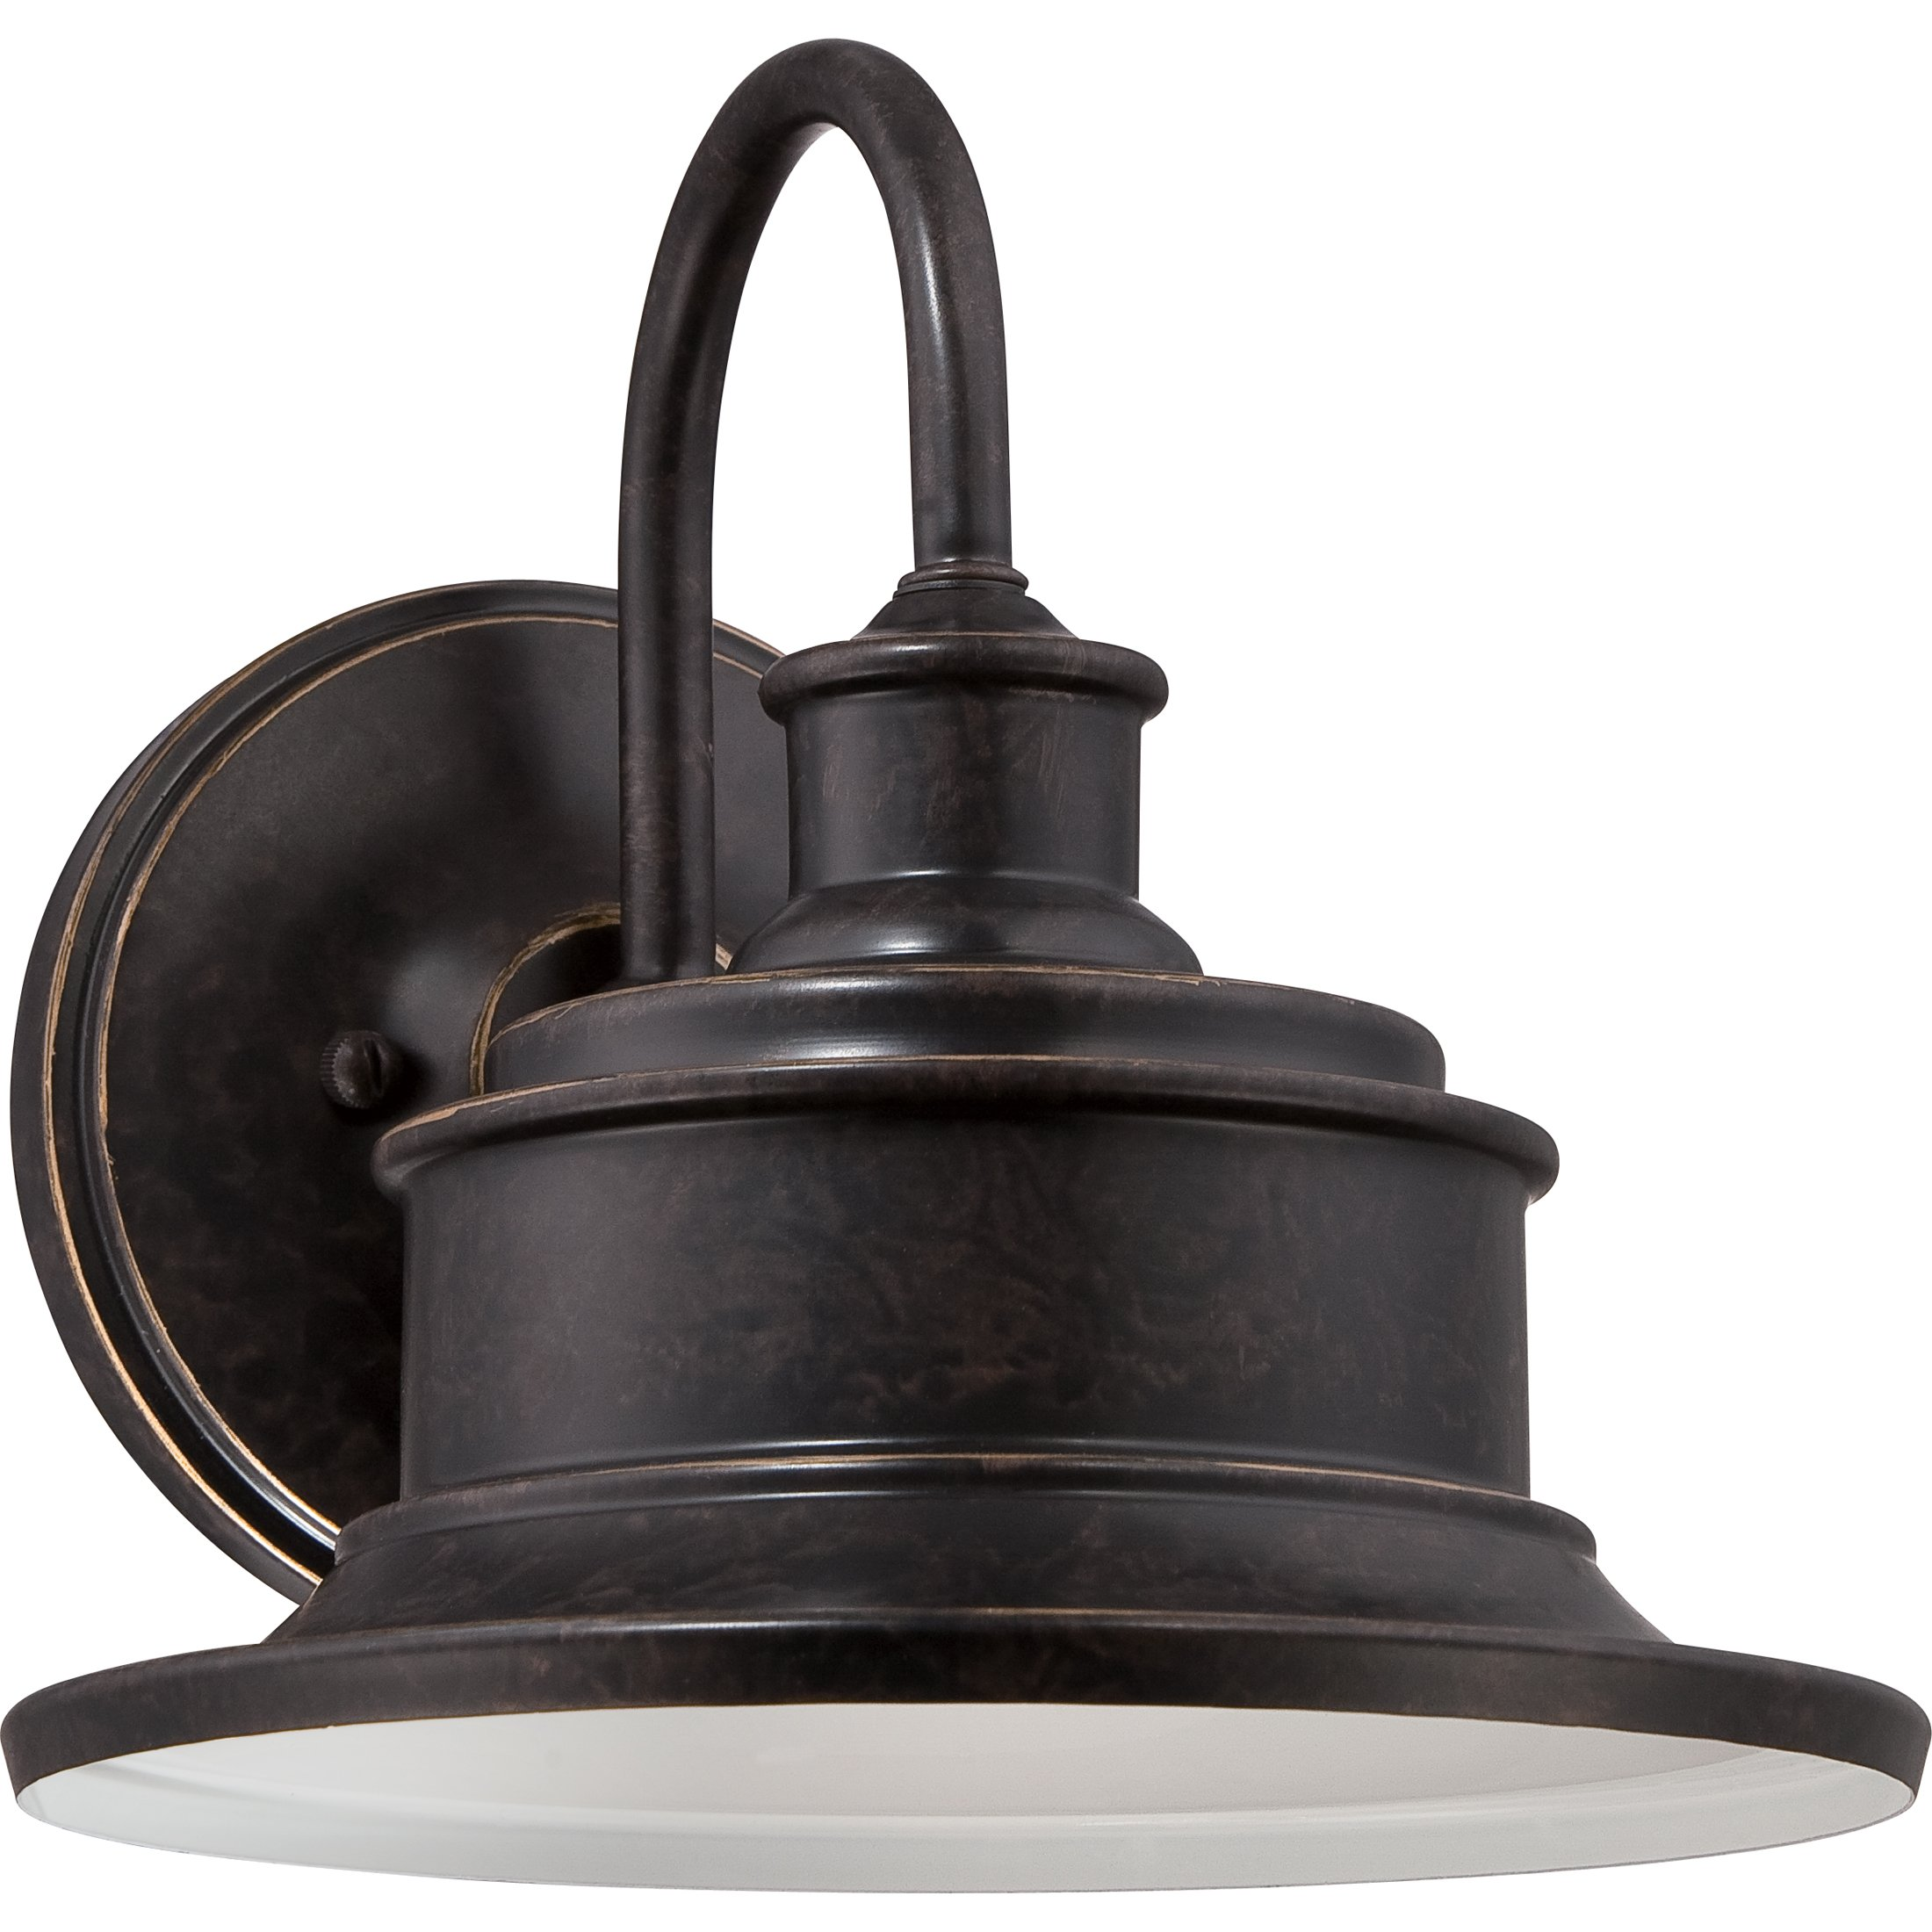 Quoizel SFD8411IB One Light Outdoor Wall Tabletop Lanterns Large Imperial Bronze by Quoizel (Image #2)